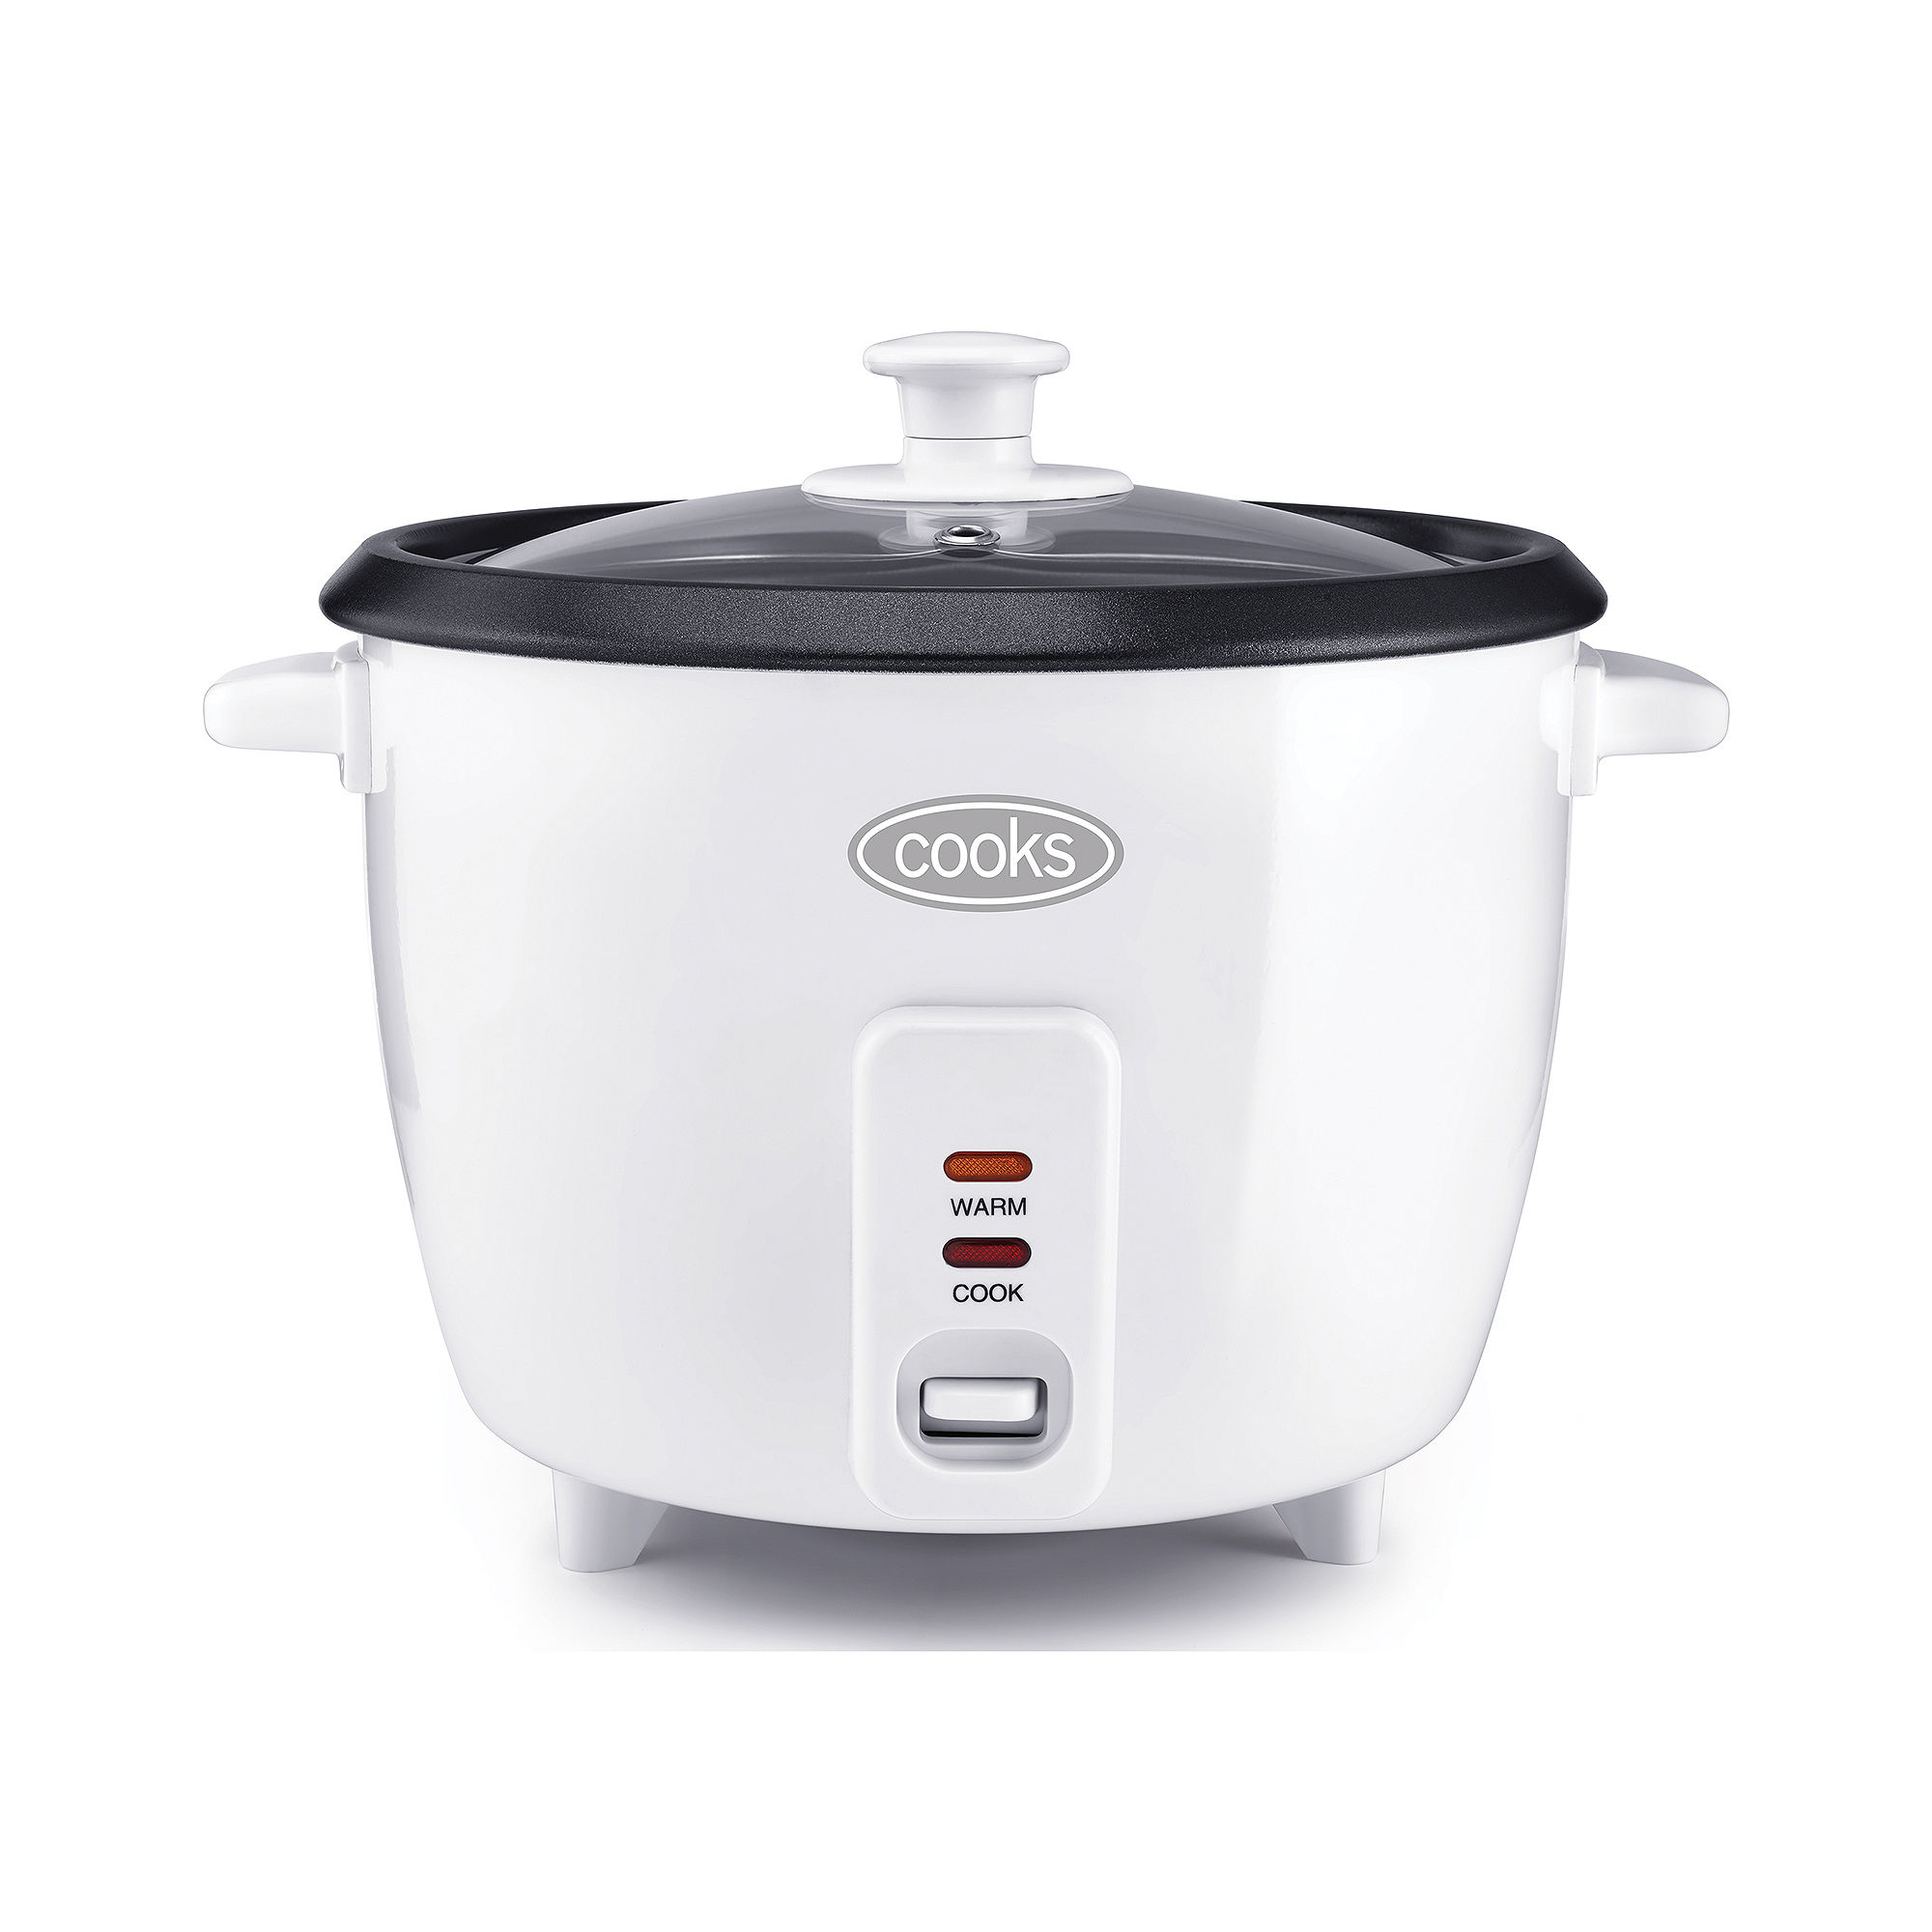 Cooks 16-Cup Rice Cooker